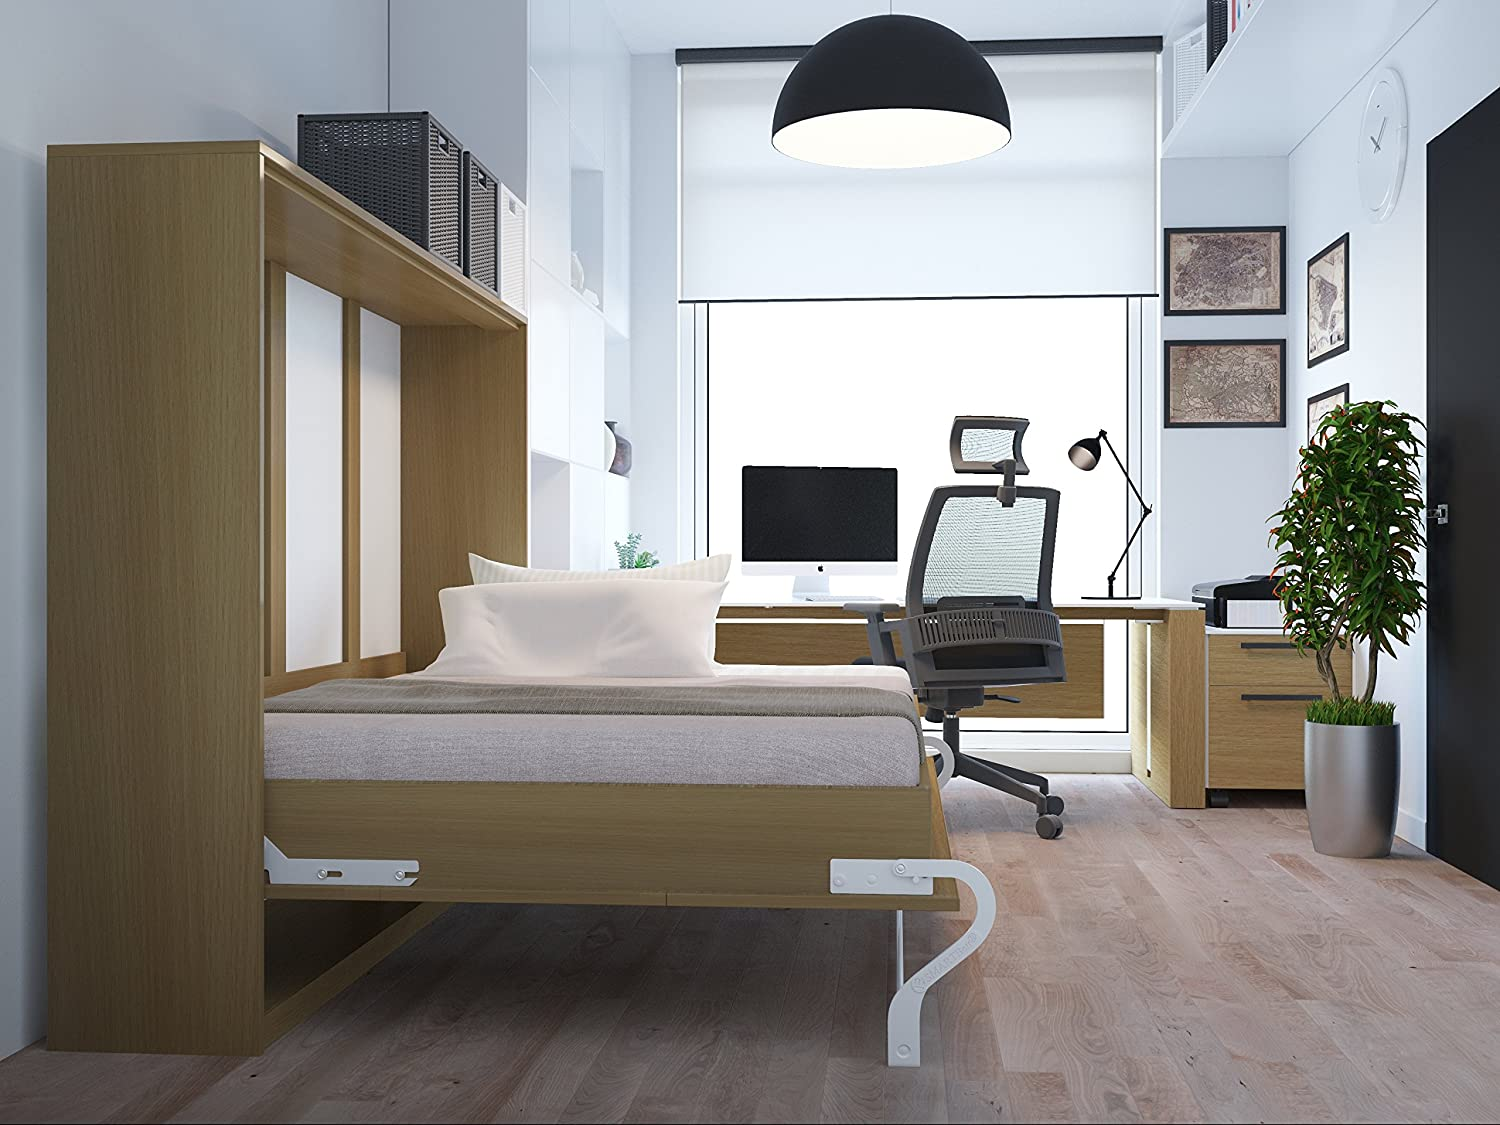 schrankbett 140x200 cm horizontal buche schrankklappbett. Black Bedroom Furniture Sets. Home Design Ideas